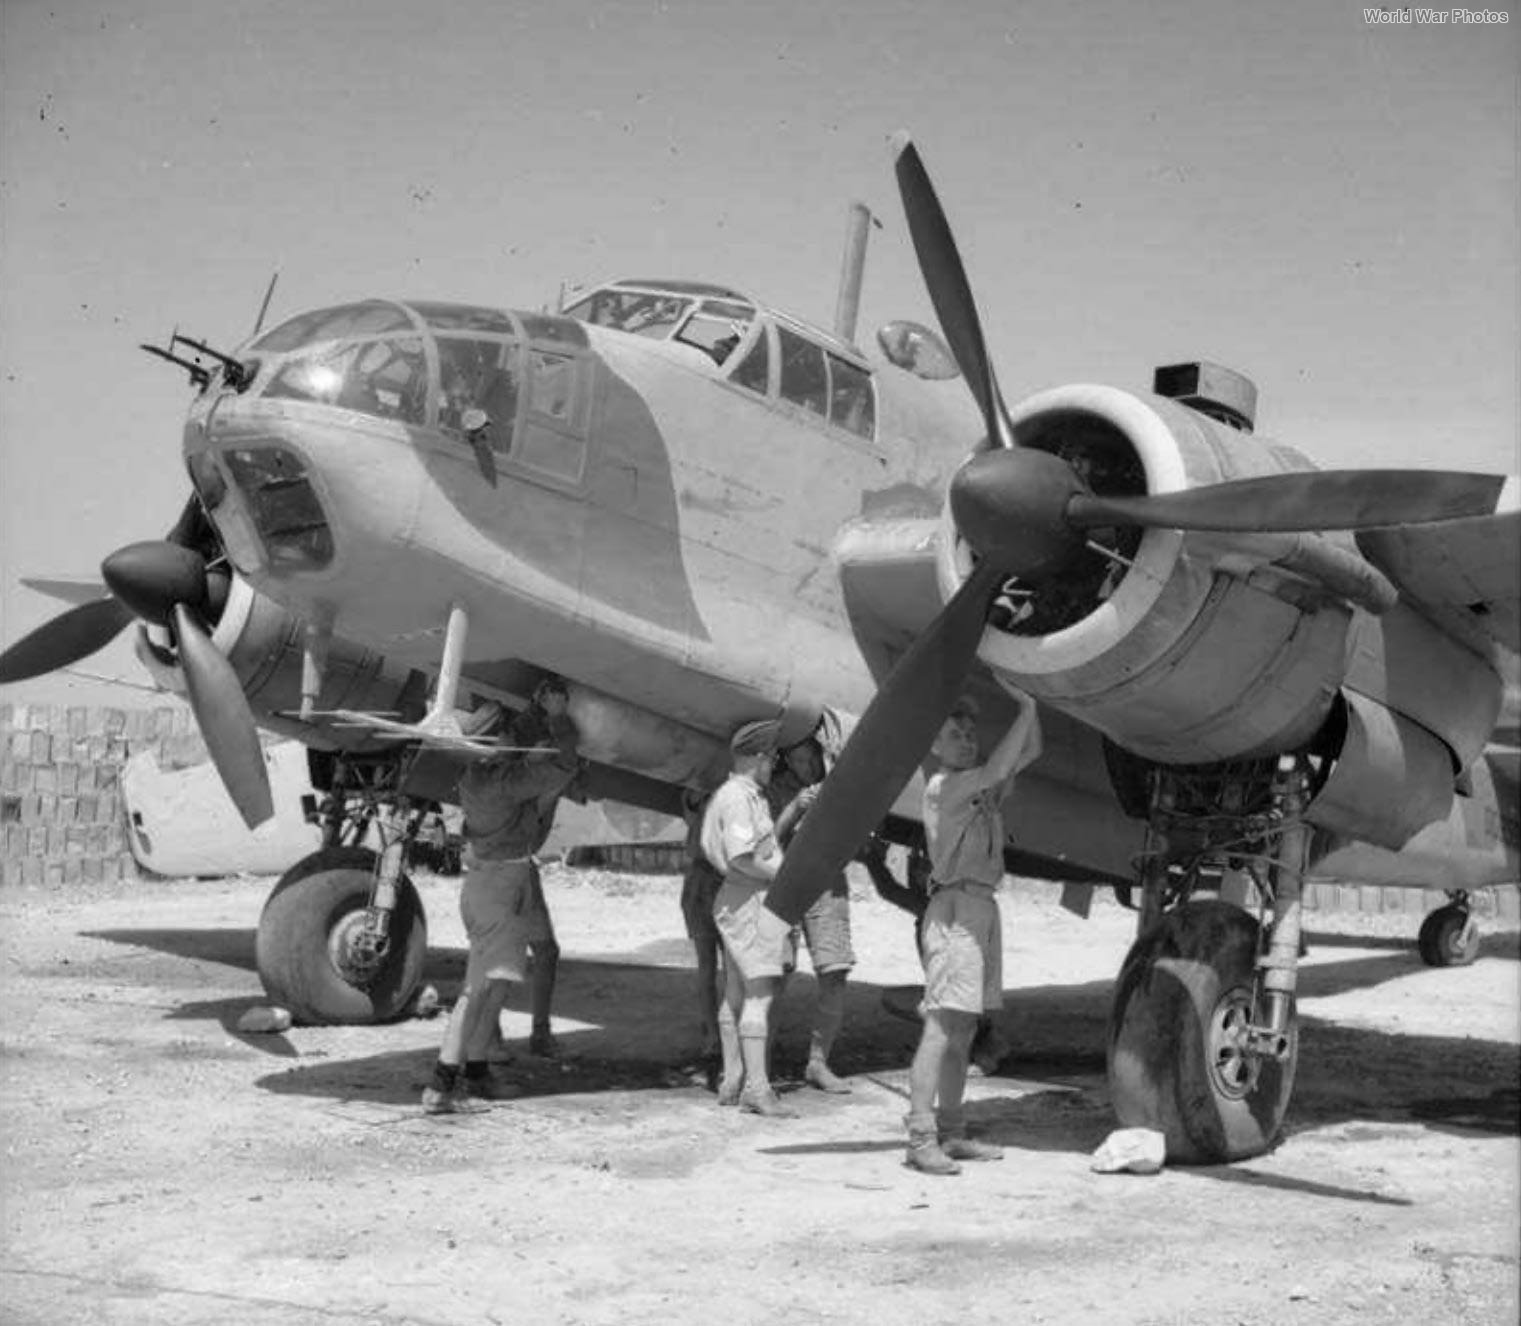 Bristol Beaufort of No. 217 Squadron RAF Malta